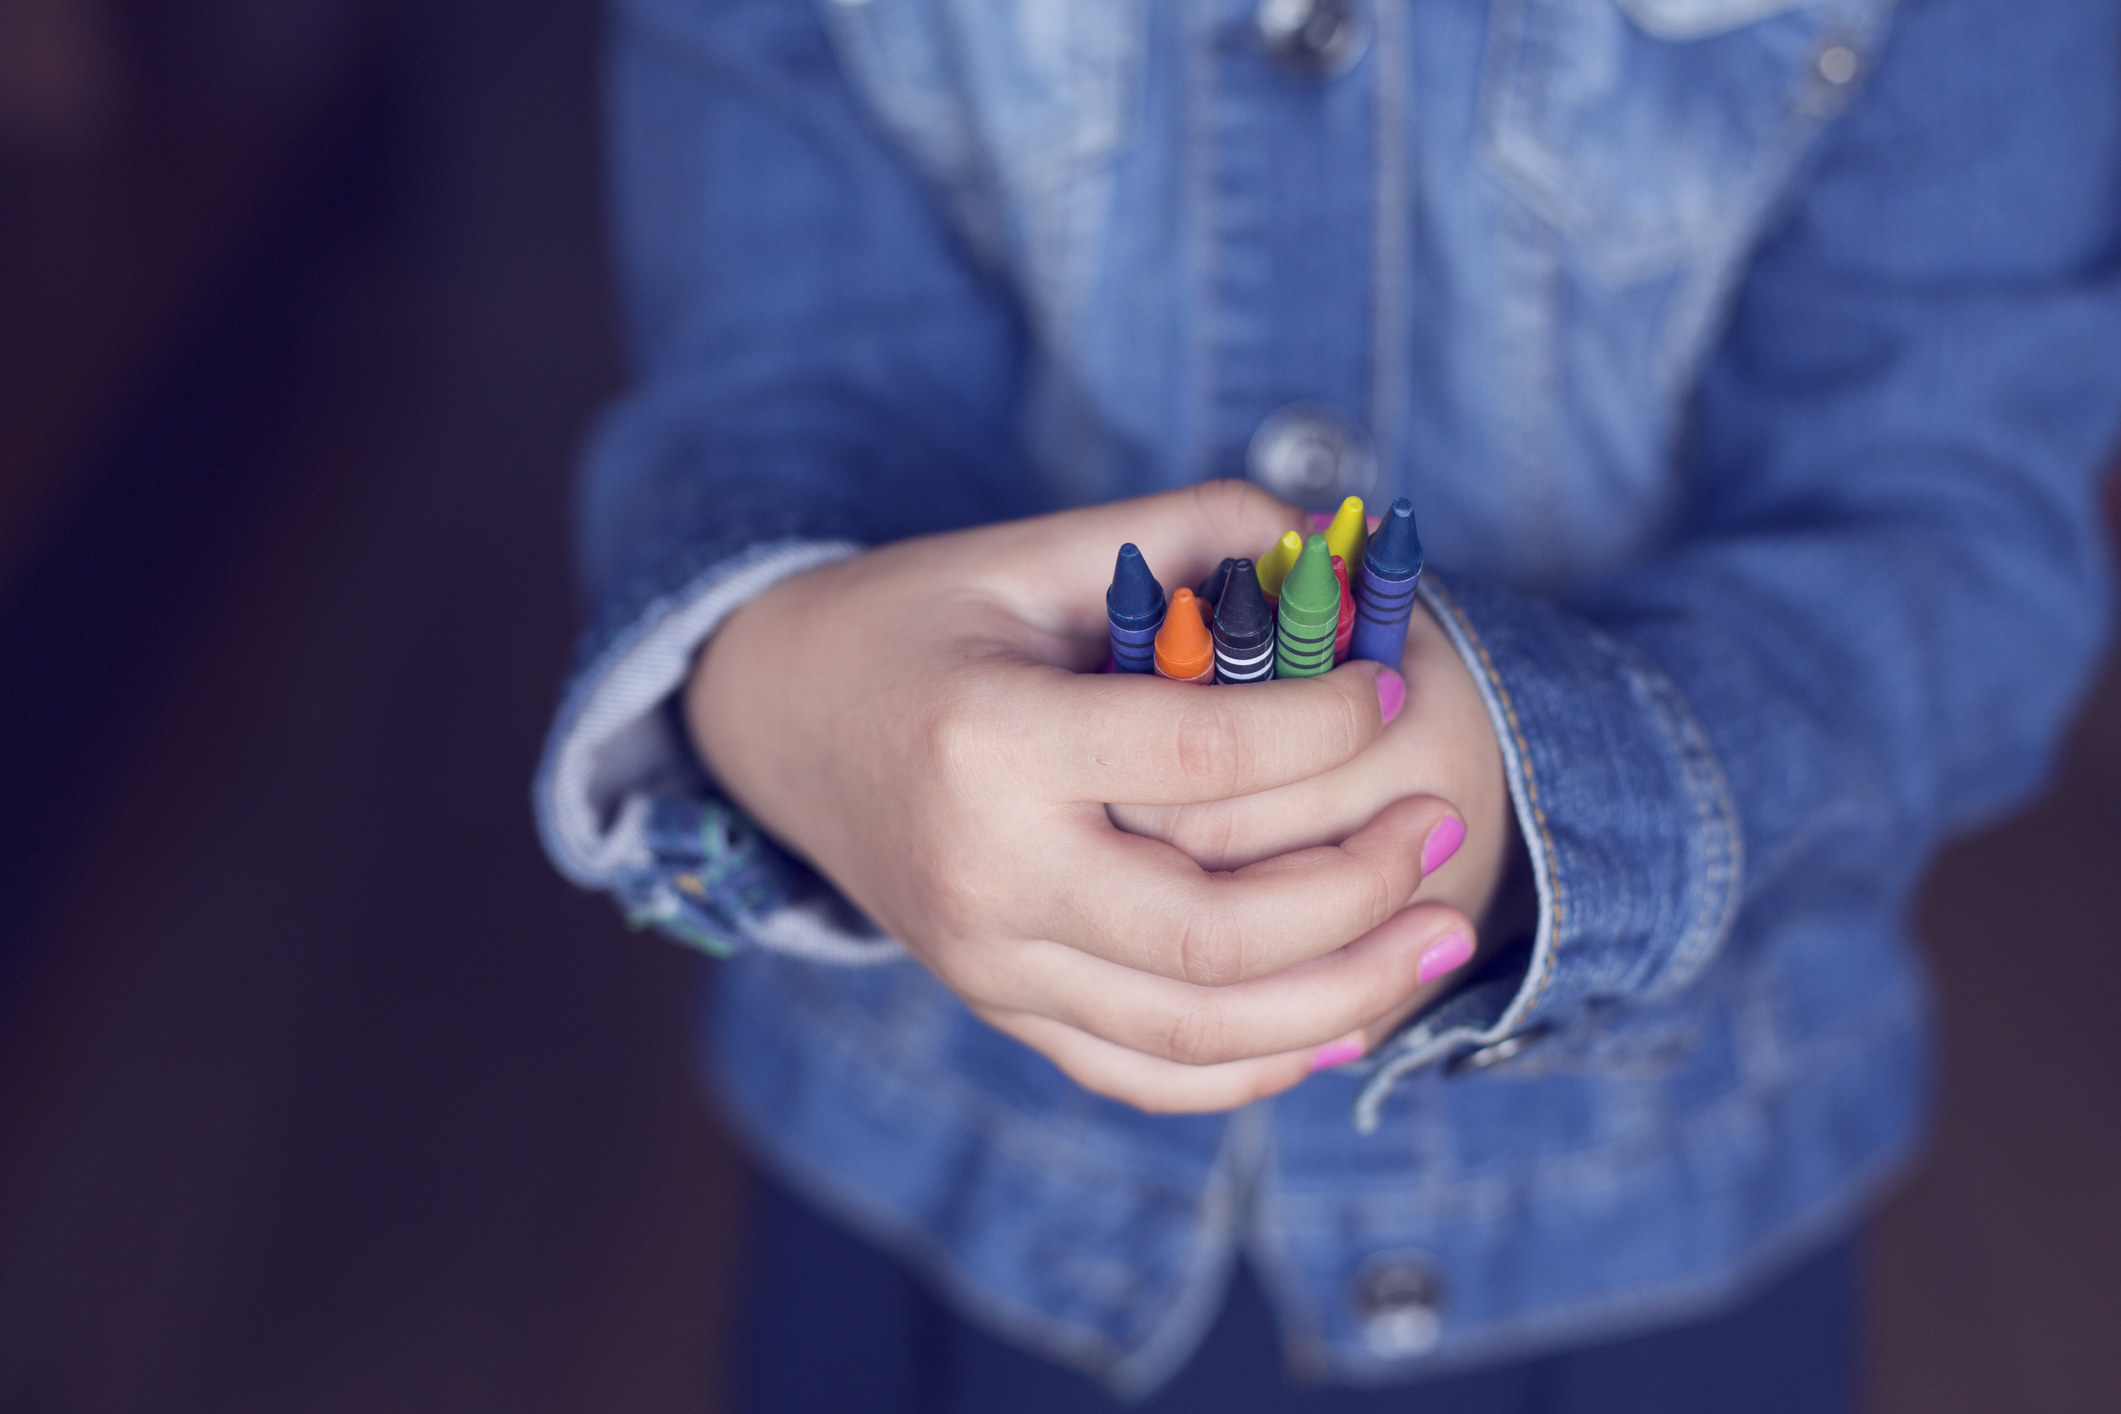 A child holds a bunch of crayons